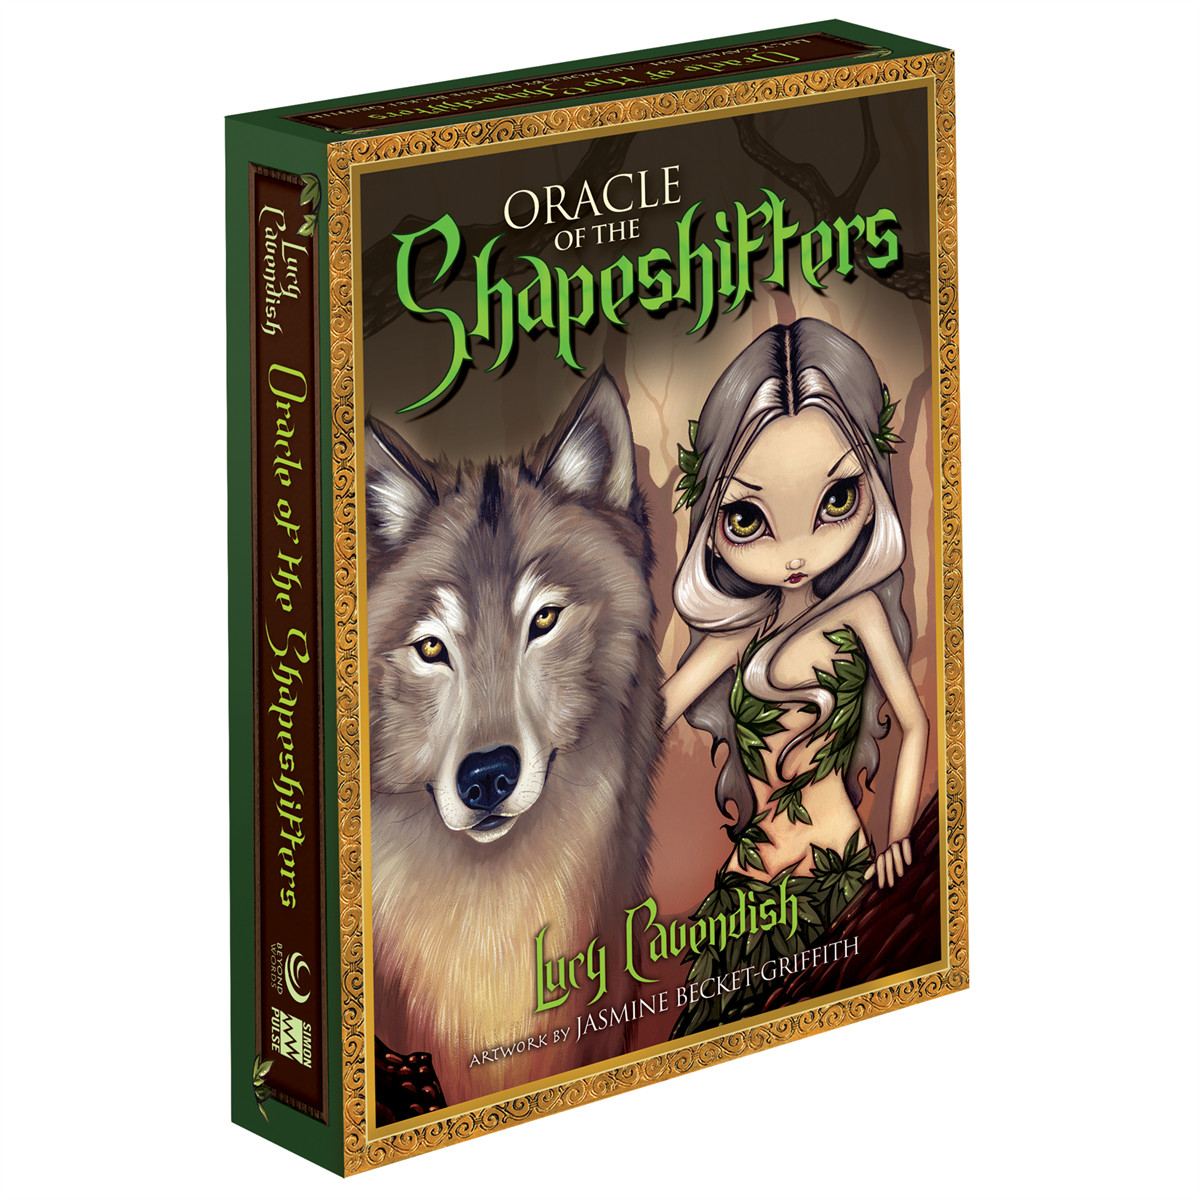 Oracle-of-the-shapeshifters-9781582703763.in01